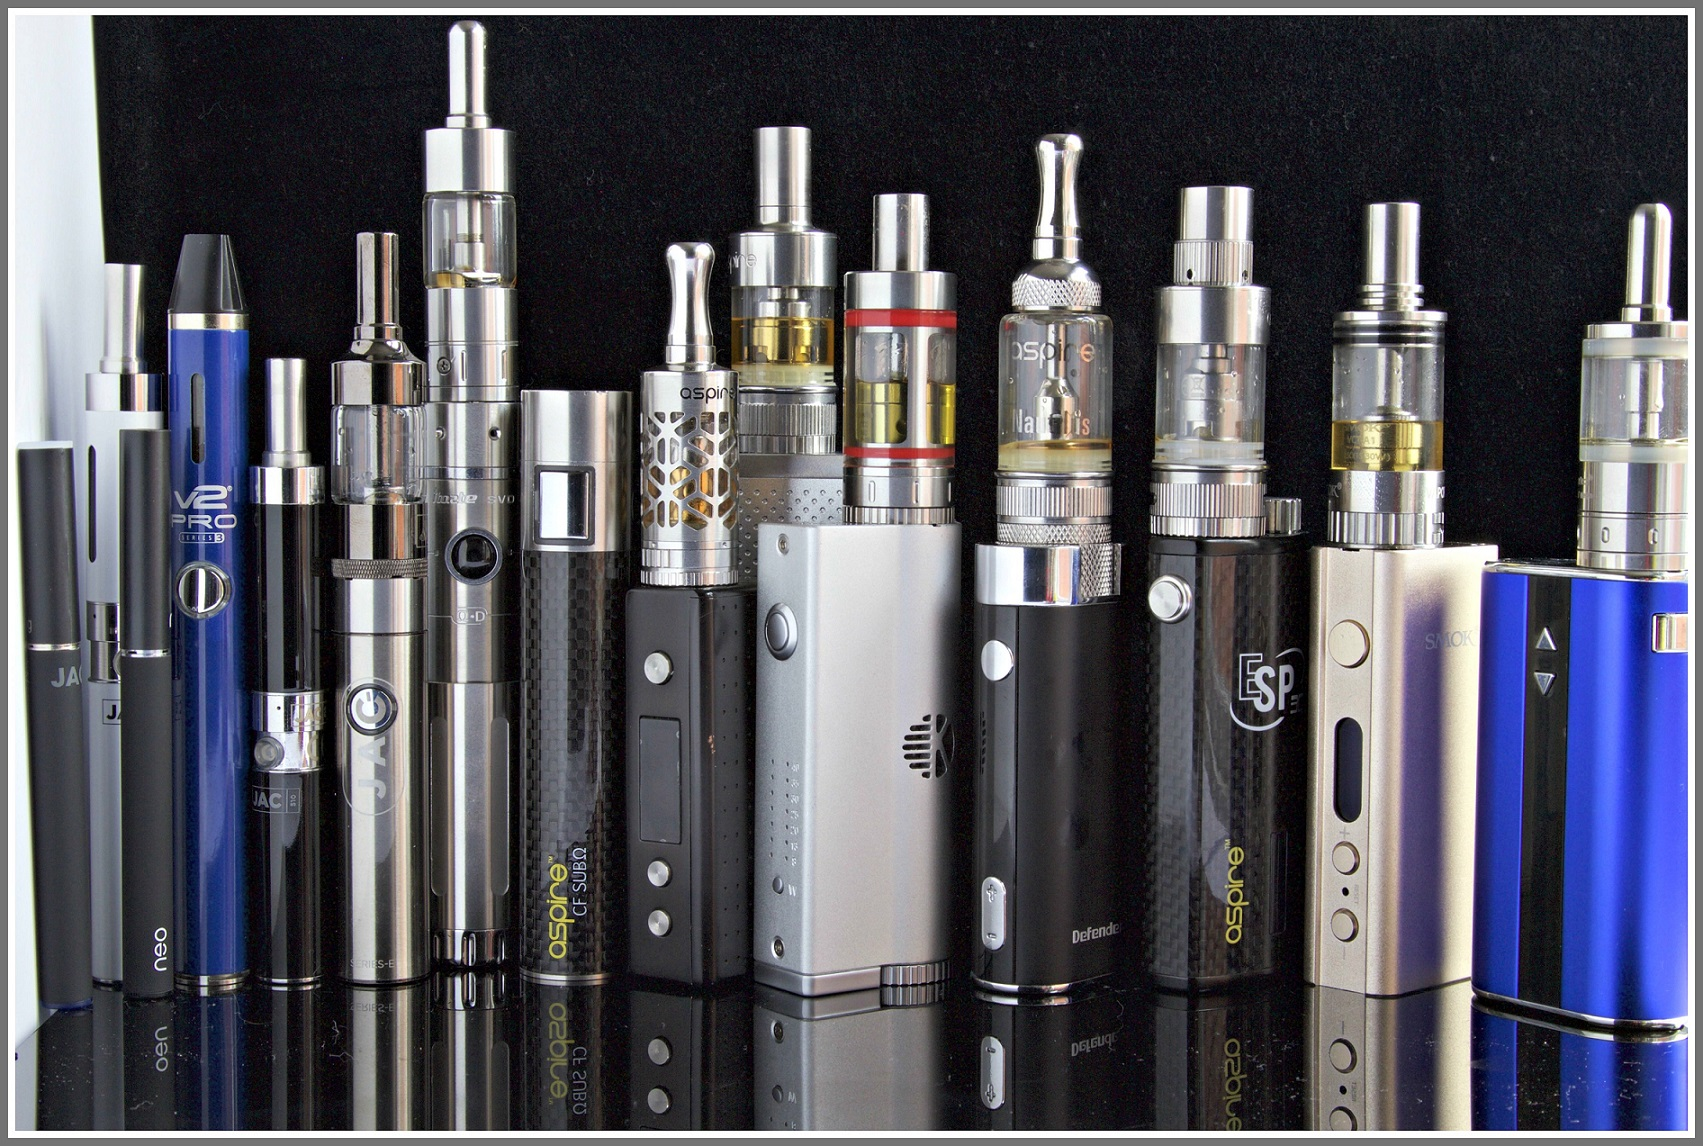 A variety of vaping devices. (Photo courtesy of Wikipedia)